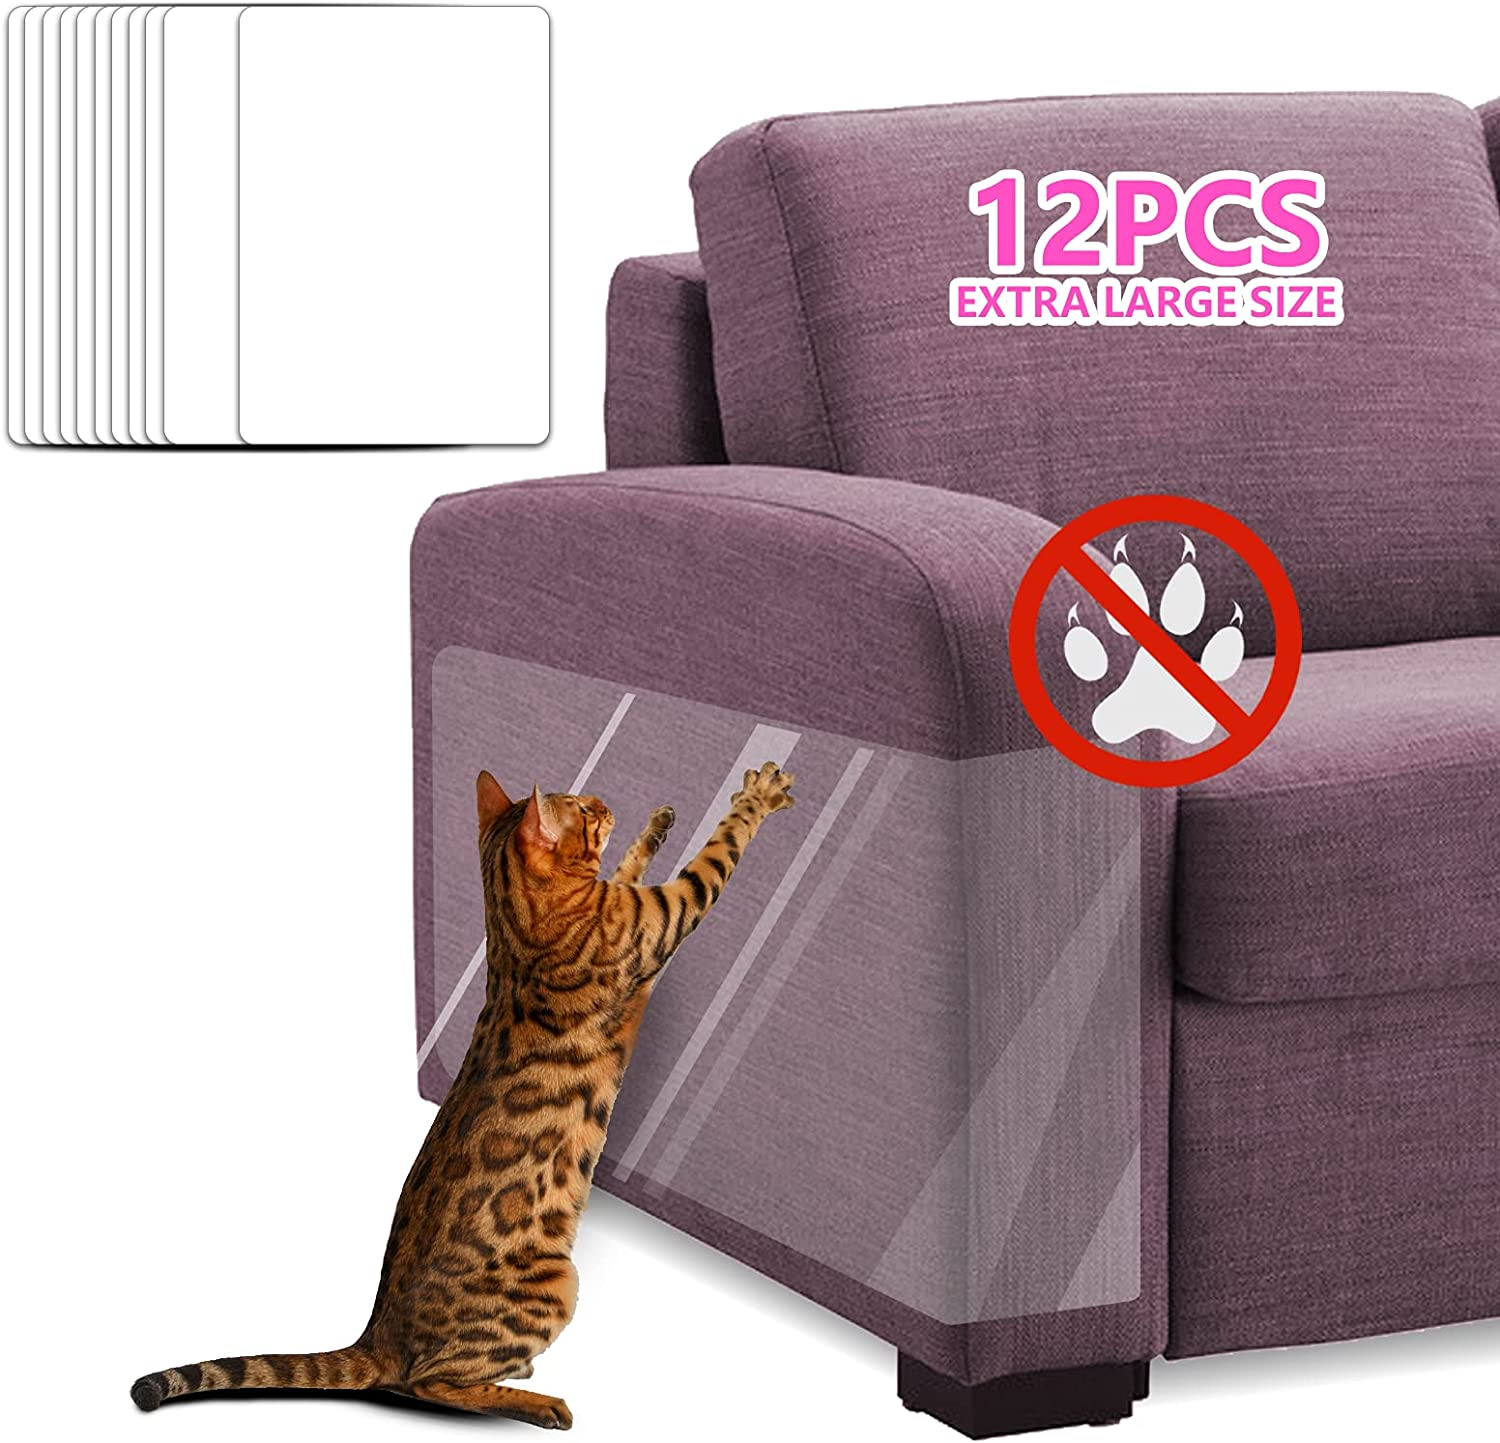 ECOCONUT Pet Couch service Latest item Protector 12PCS XL Dog Claw Guards Clear Cat